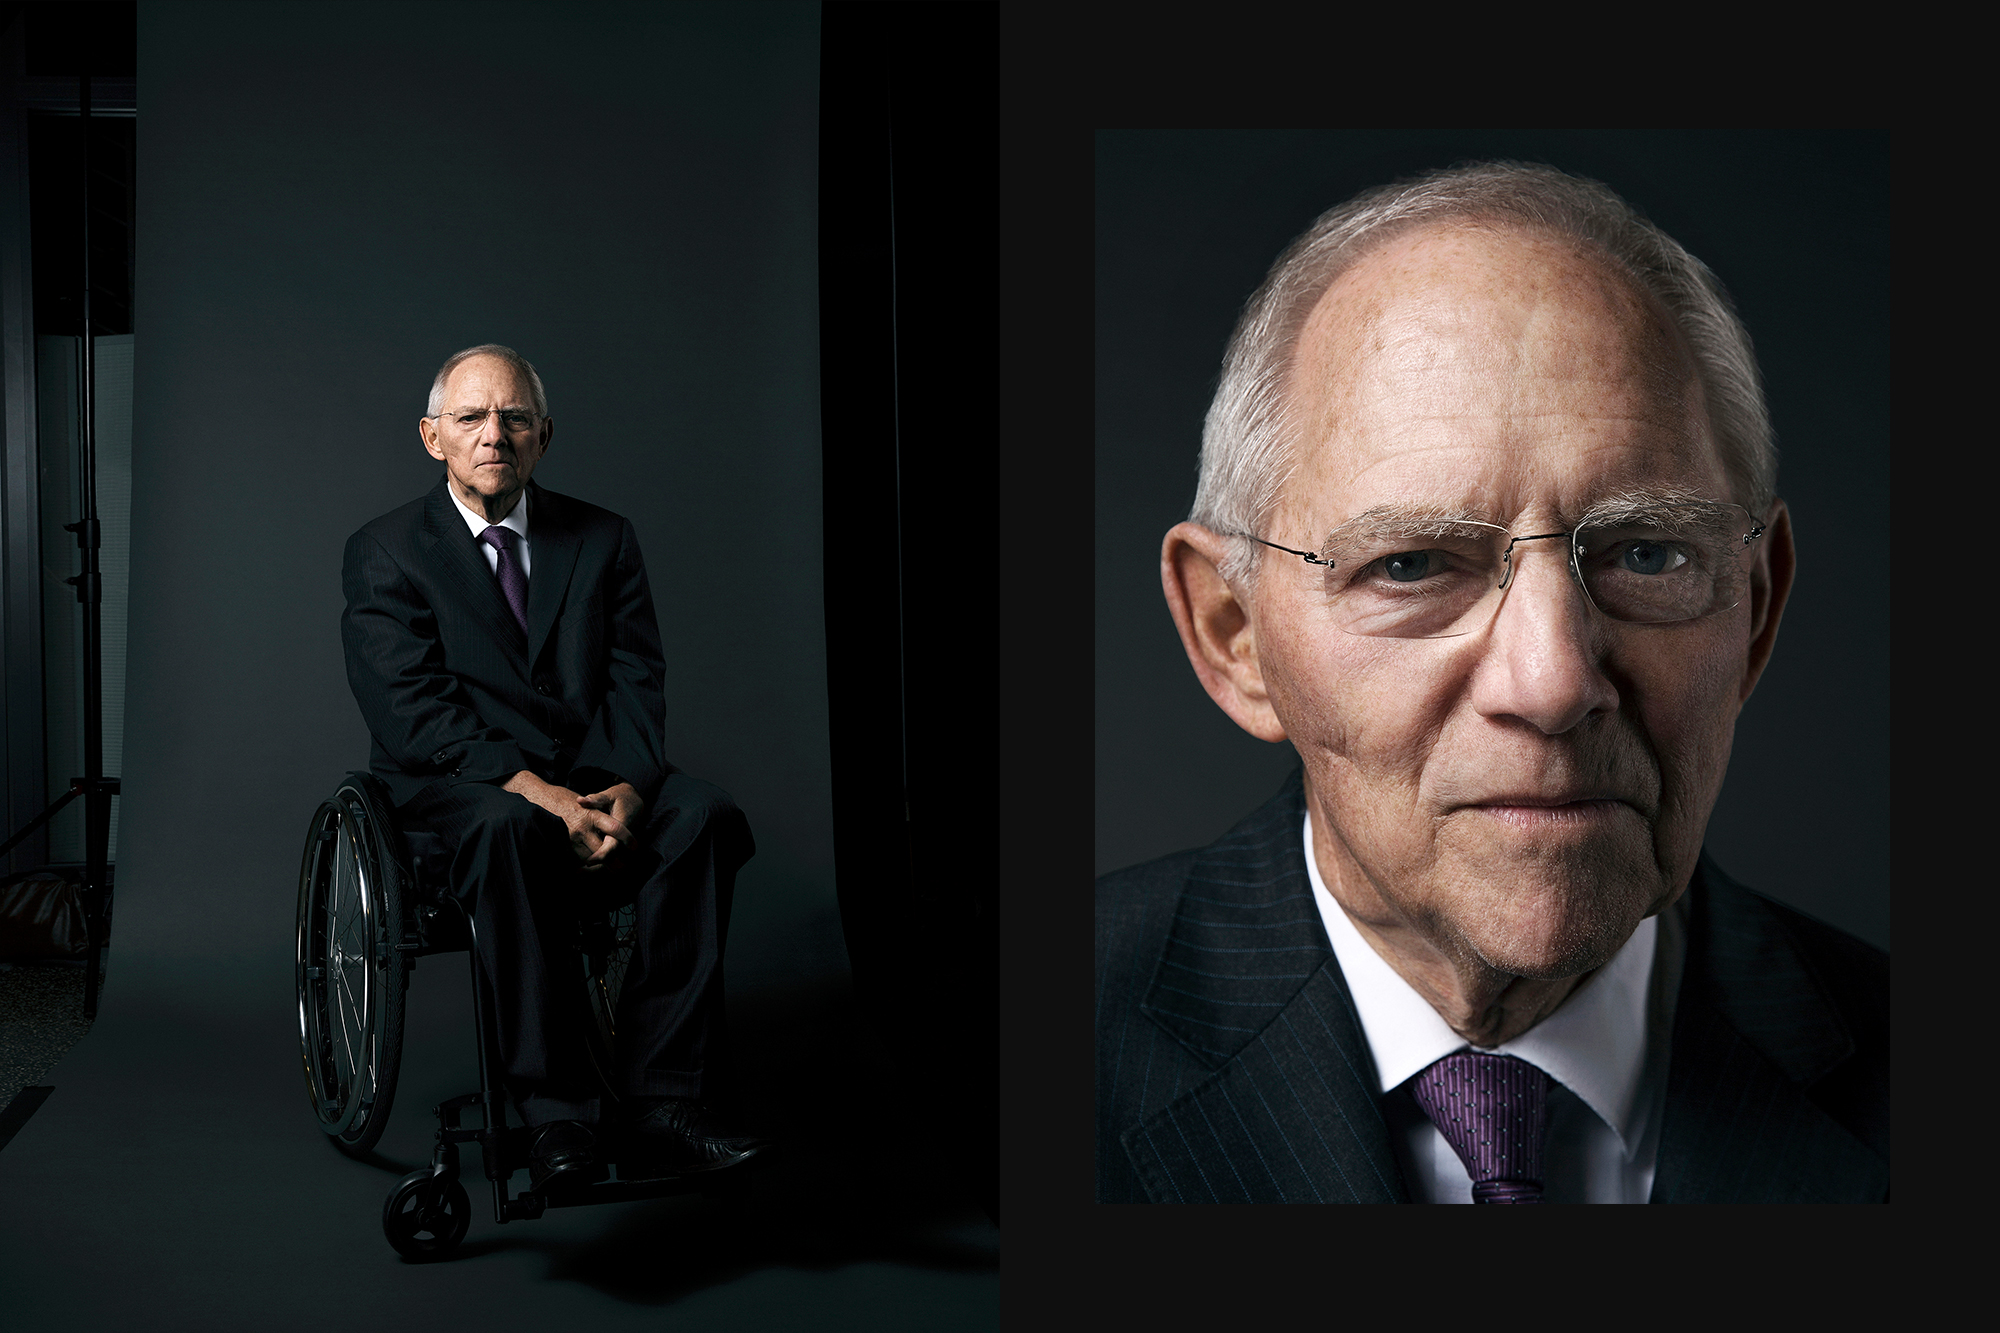 dr wolfgang schaeuble photographed by max baier and arian henning